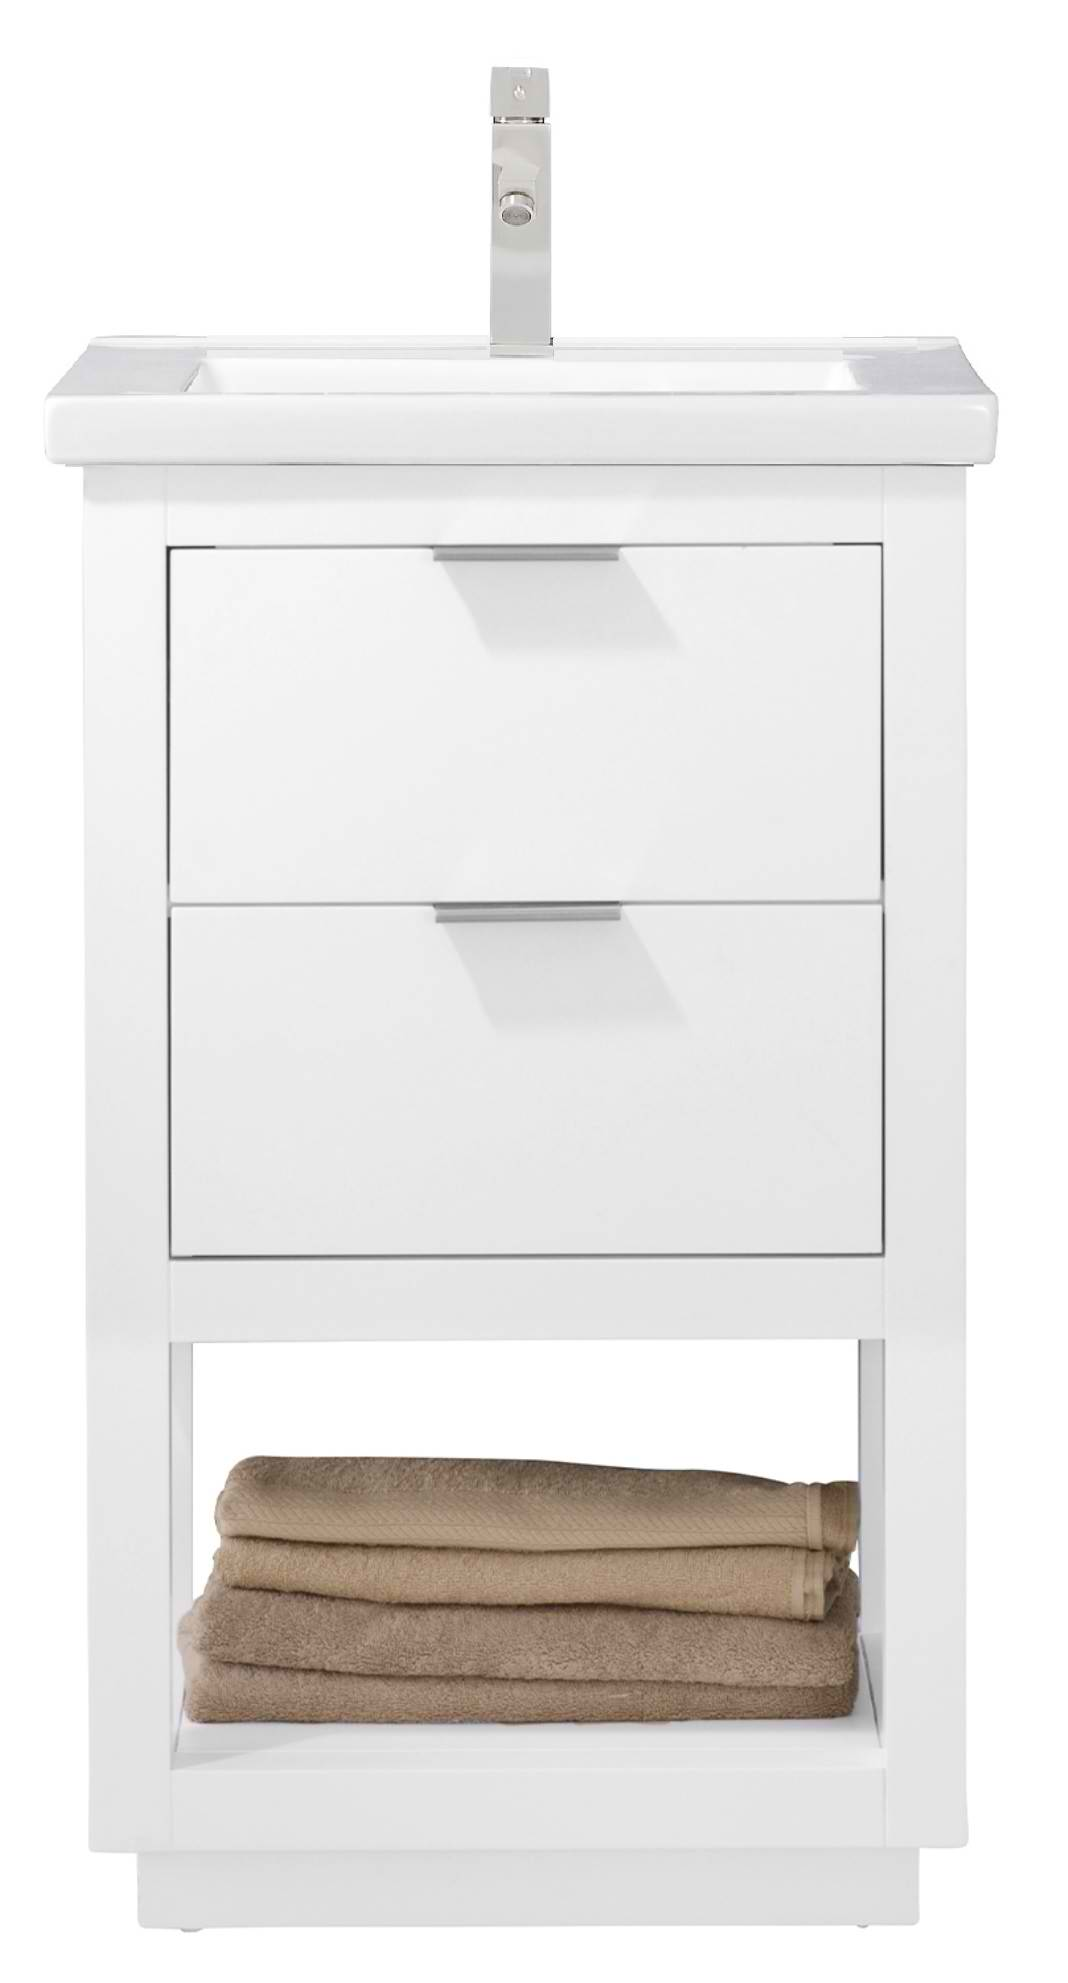 "Modern 20"" Single Sink Vanity with Porcelain Integrated Counterop and Sink in White Finish"